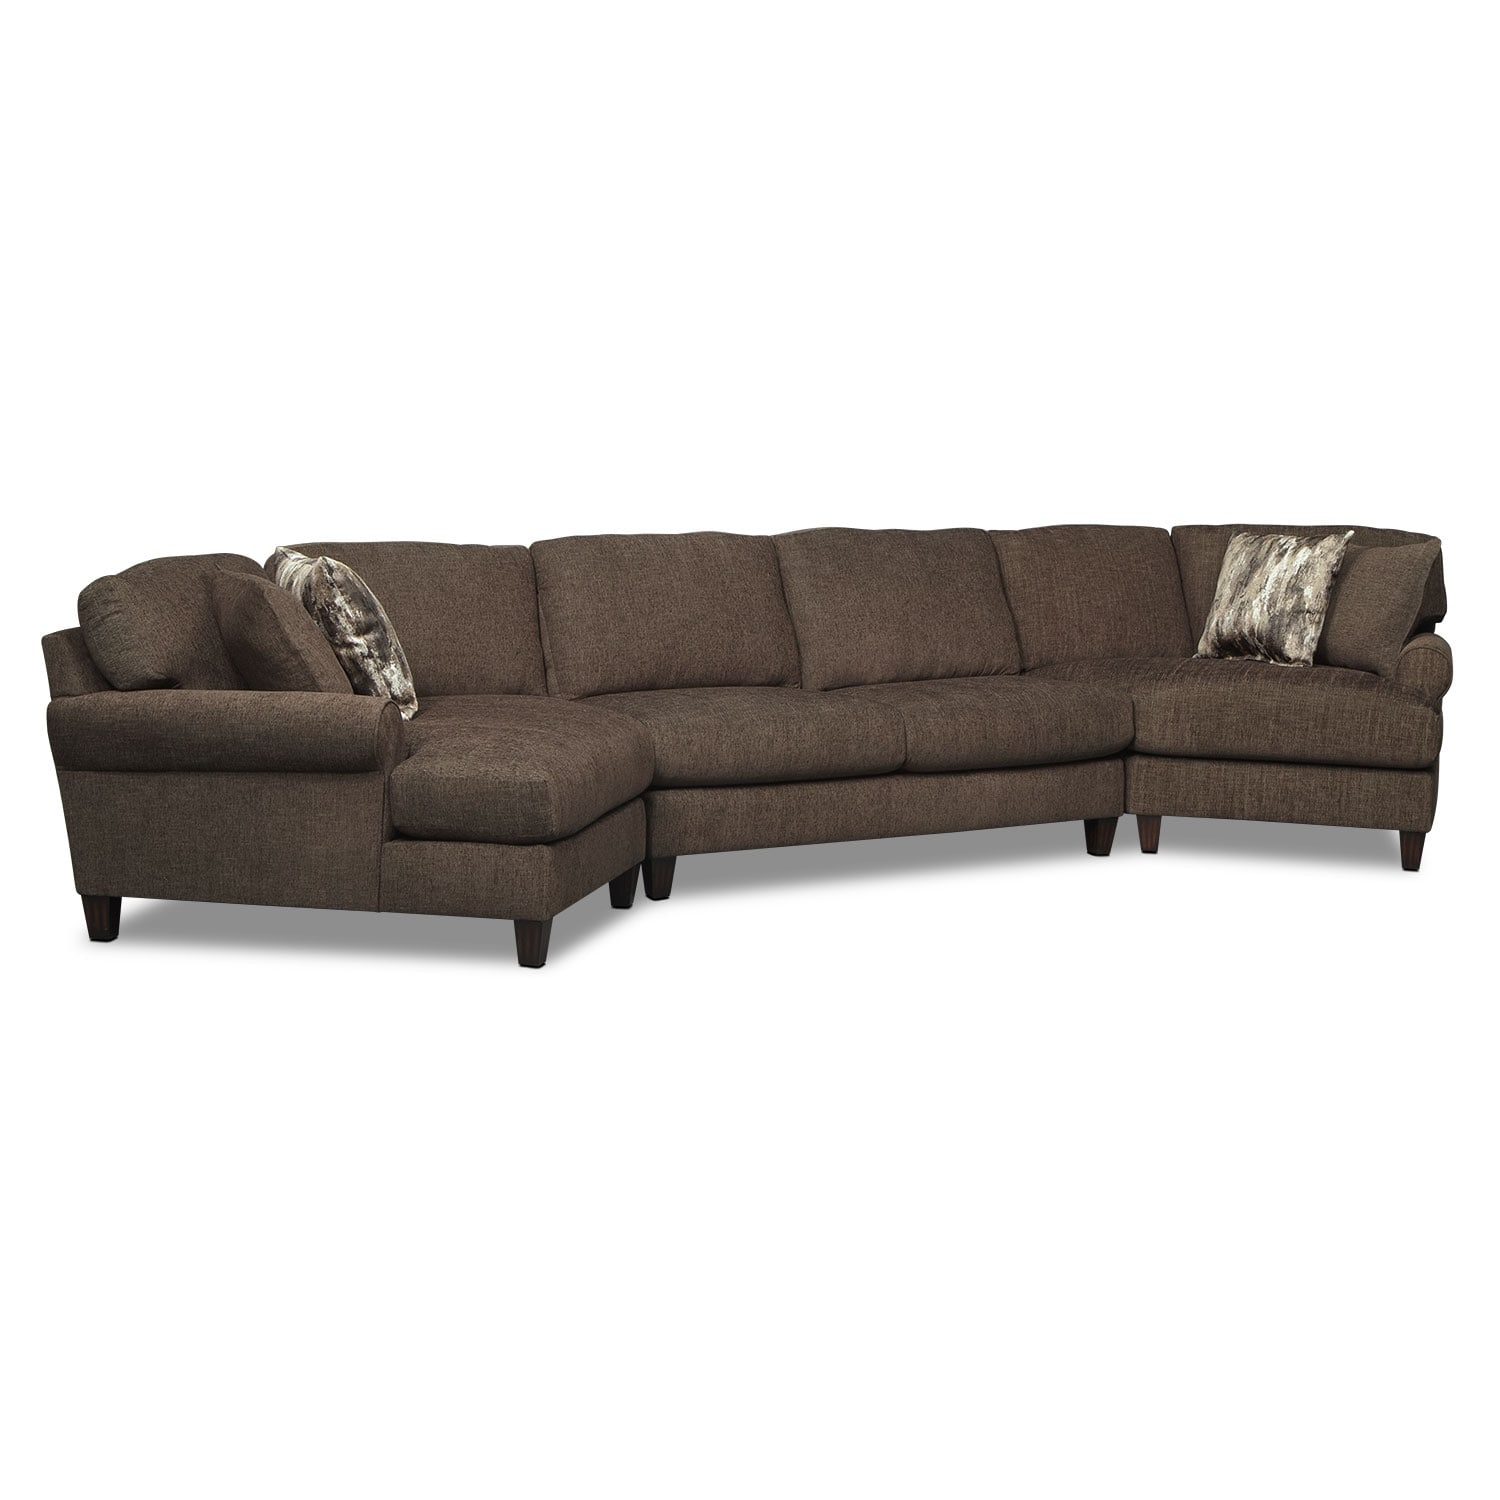 Karma 3-Piece Sectional with 2 Cuddlers - Smoke